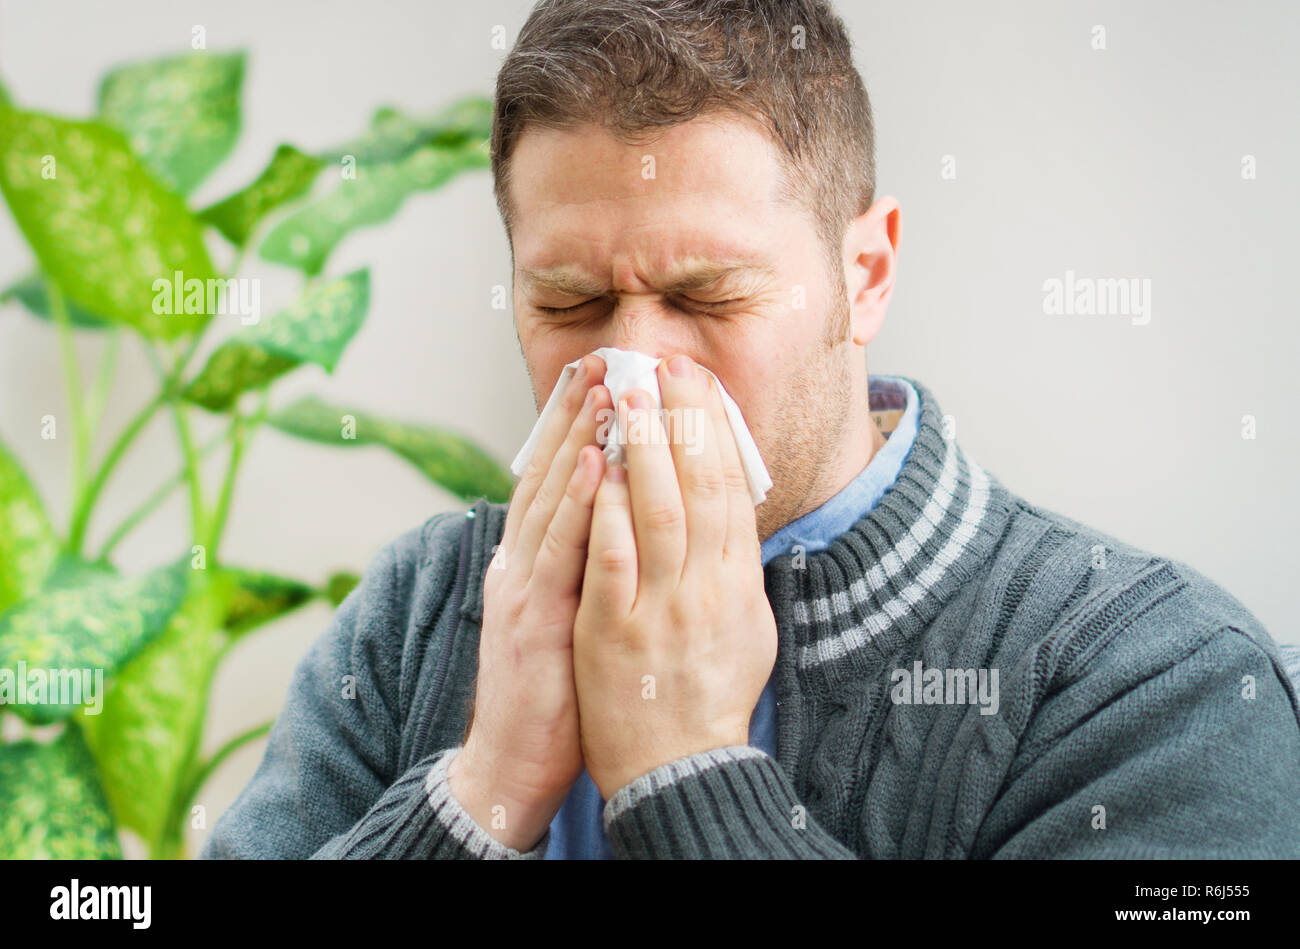 Handsome unshaved man blowing nose to napkin. Stock Photo